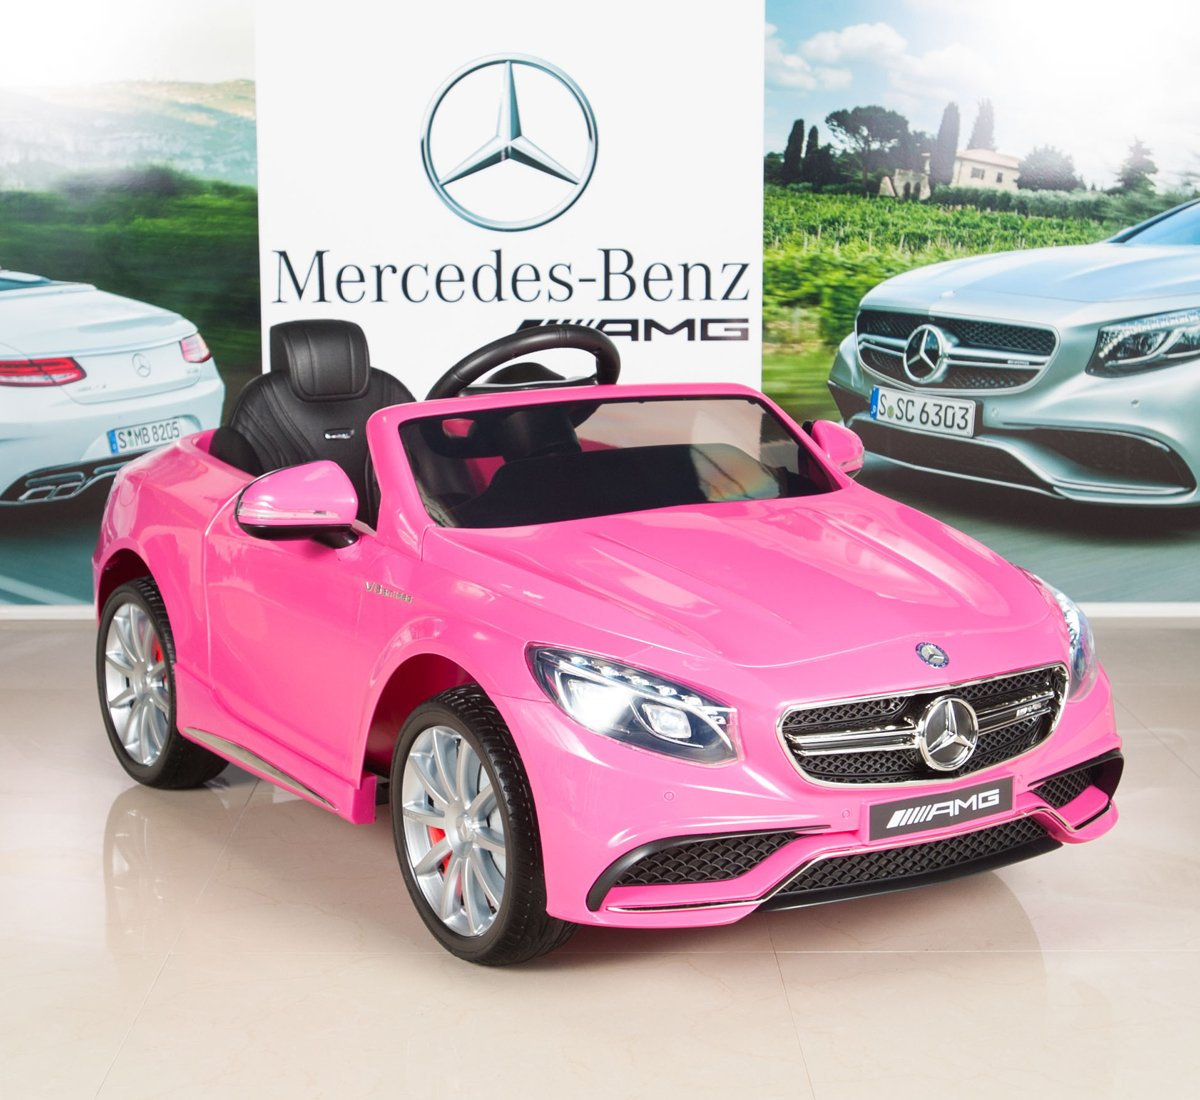 Mercedes-Benz S63 Kids 12V Electric Power Wheels RC Ride On Car with Radio & MP3, Pink by BIG TOYS DIRECT